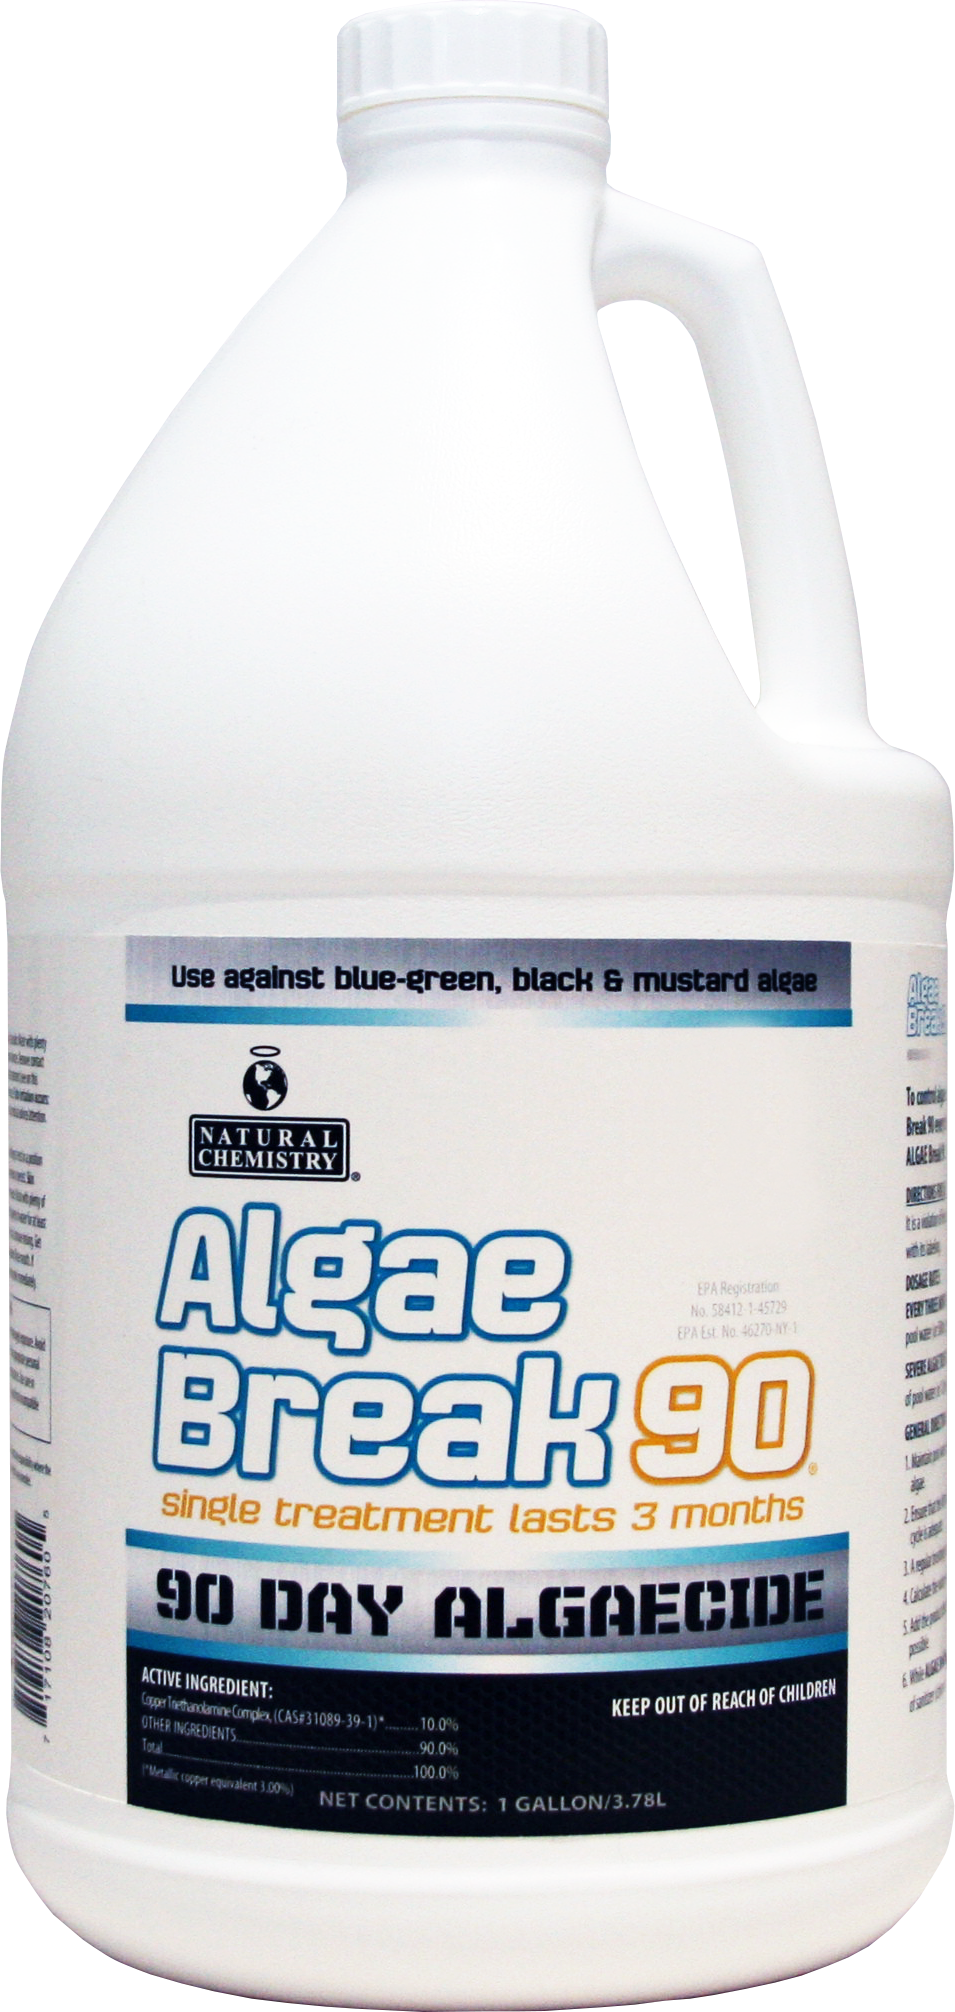 Algae Break 90   Controlling algae has never been easier! Natural Chemistry's ALGAE Break 90® is a non-staining formula that can be used against blue-green, black and mustard algae. Simply add ALGAE Break 90®every three months. Your pool will sparkle like never before.